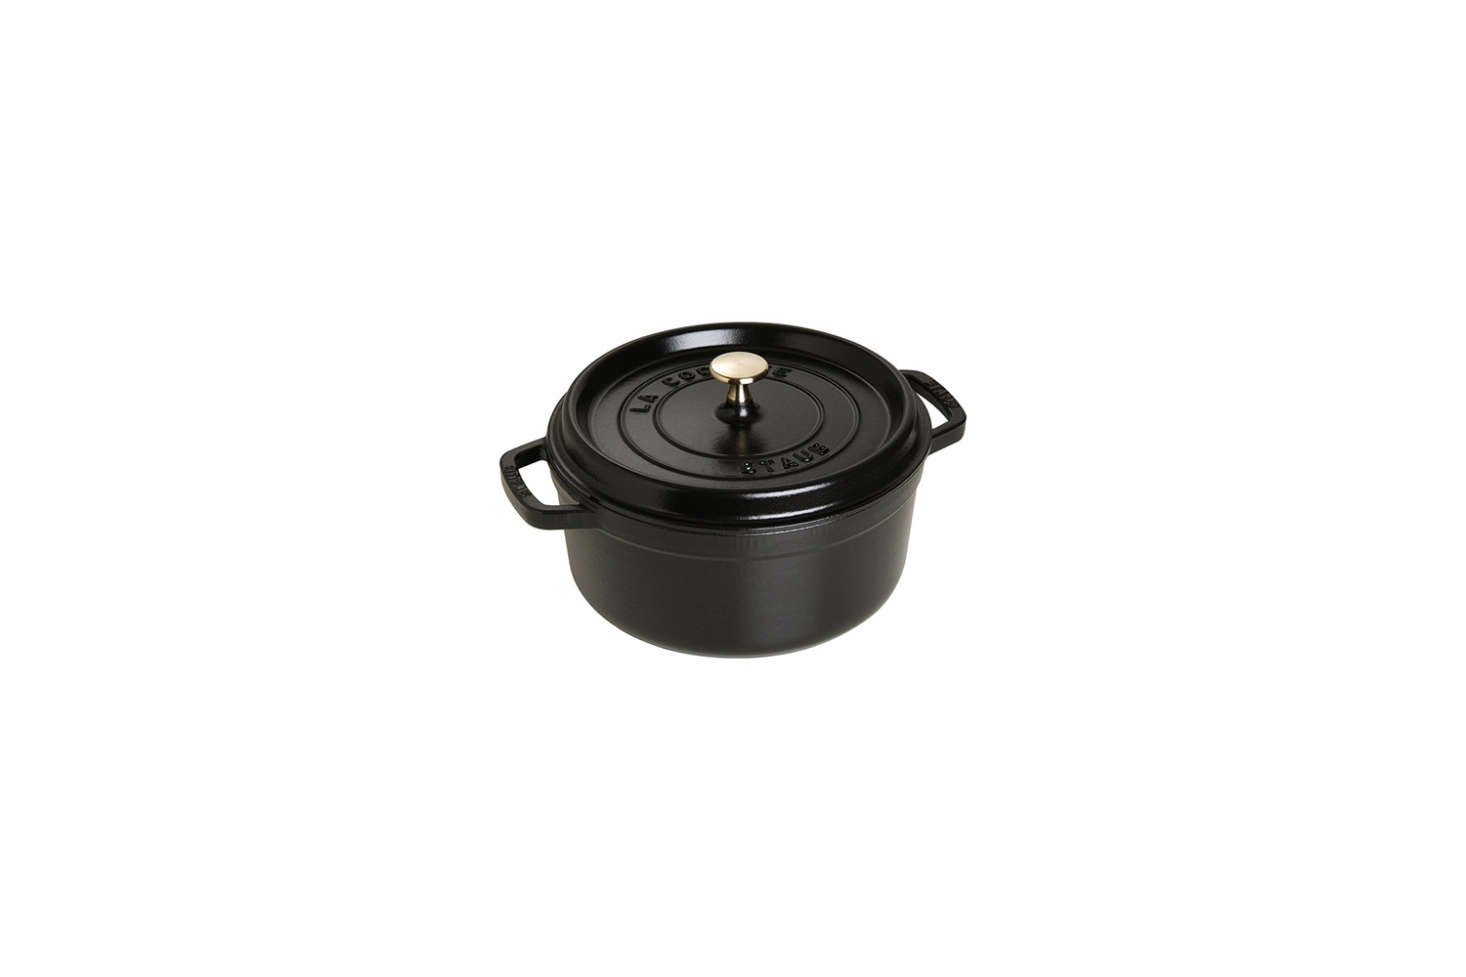 The Staub Dutch Oven won a spot on our Remodelista 100 list in our book, Remodelista: A Manual for the Considered Home. A similar choice, available on Amazon Prime, is the four-quart cocotte; $284.95.